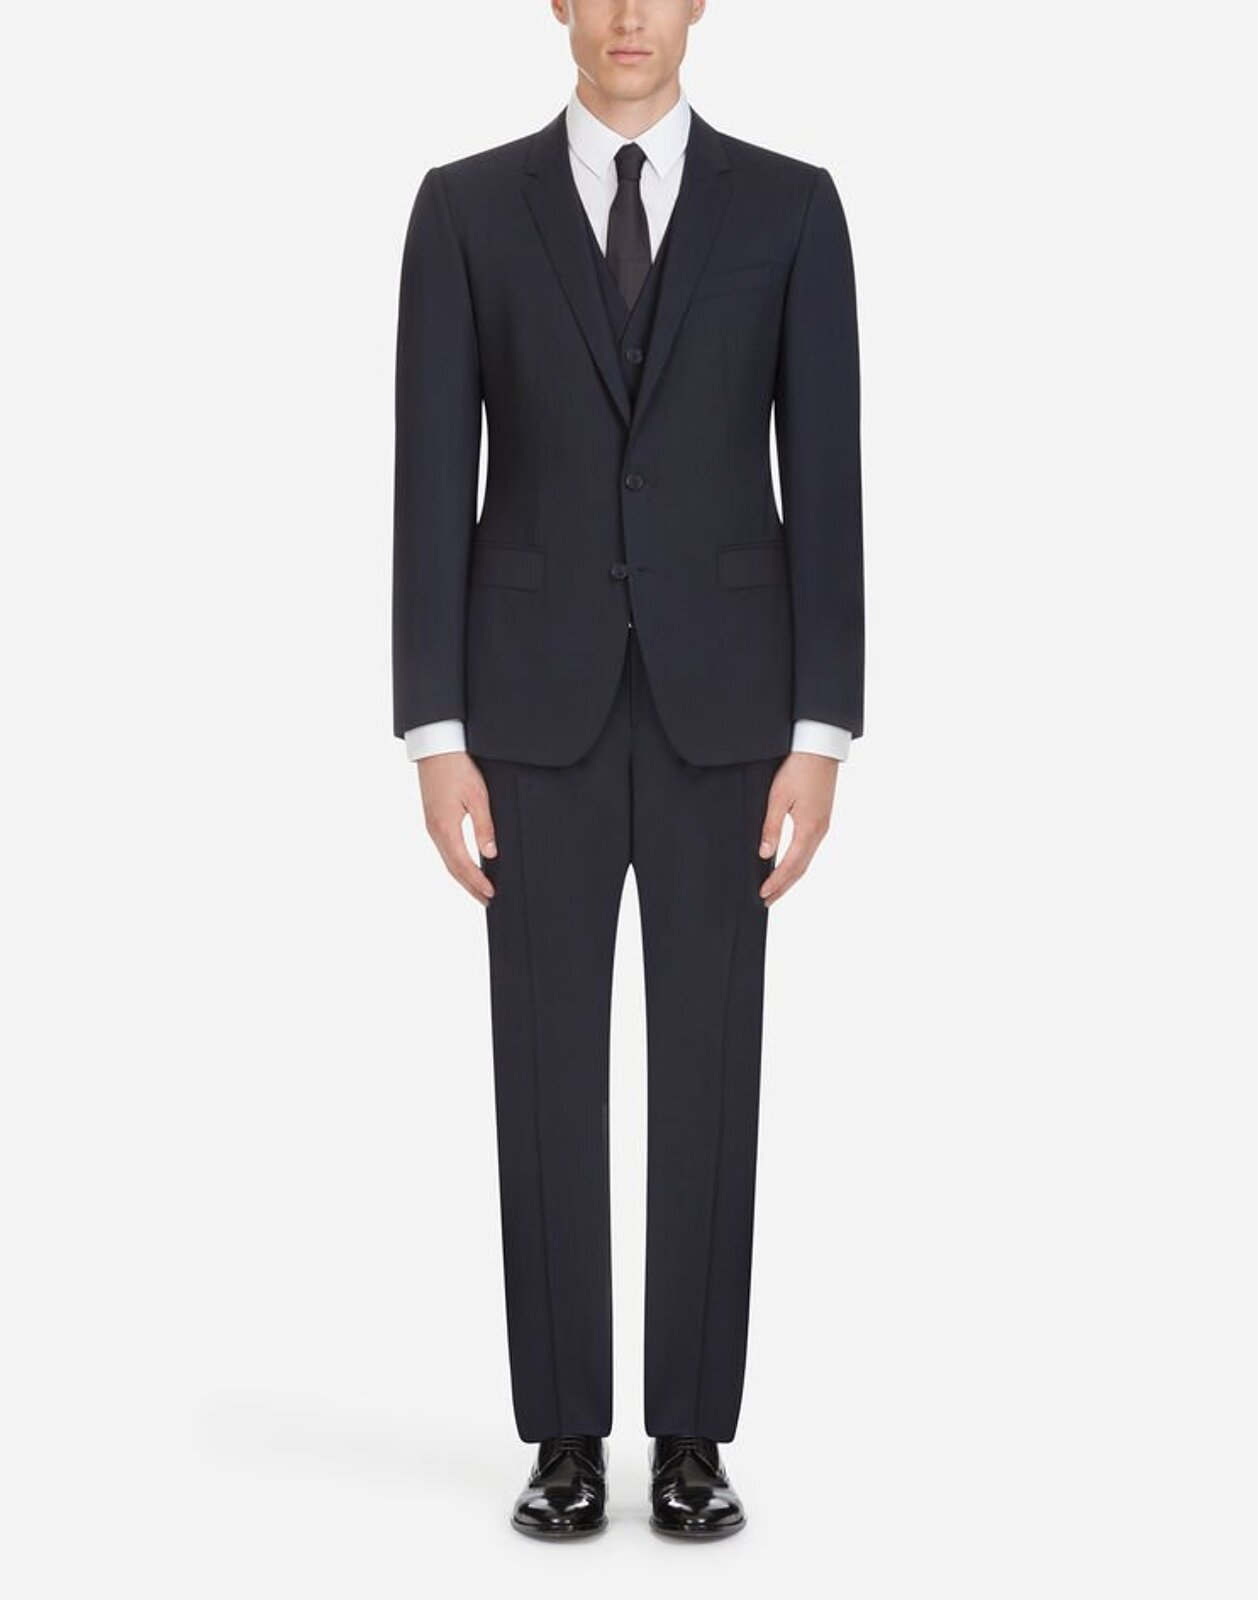 Stretch Wool Canvas Suit - Dolce & Gabbana